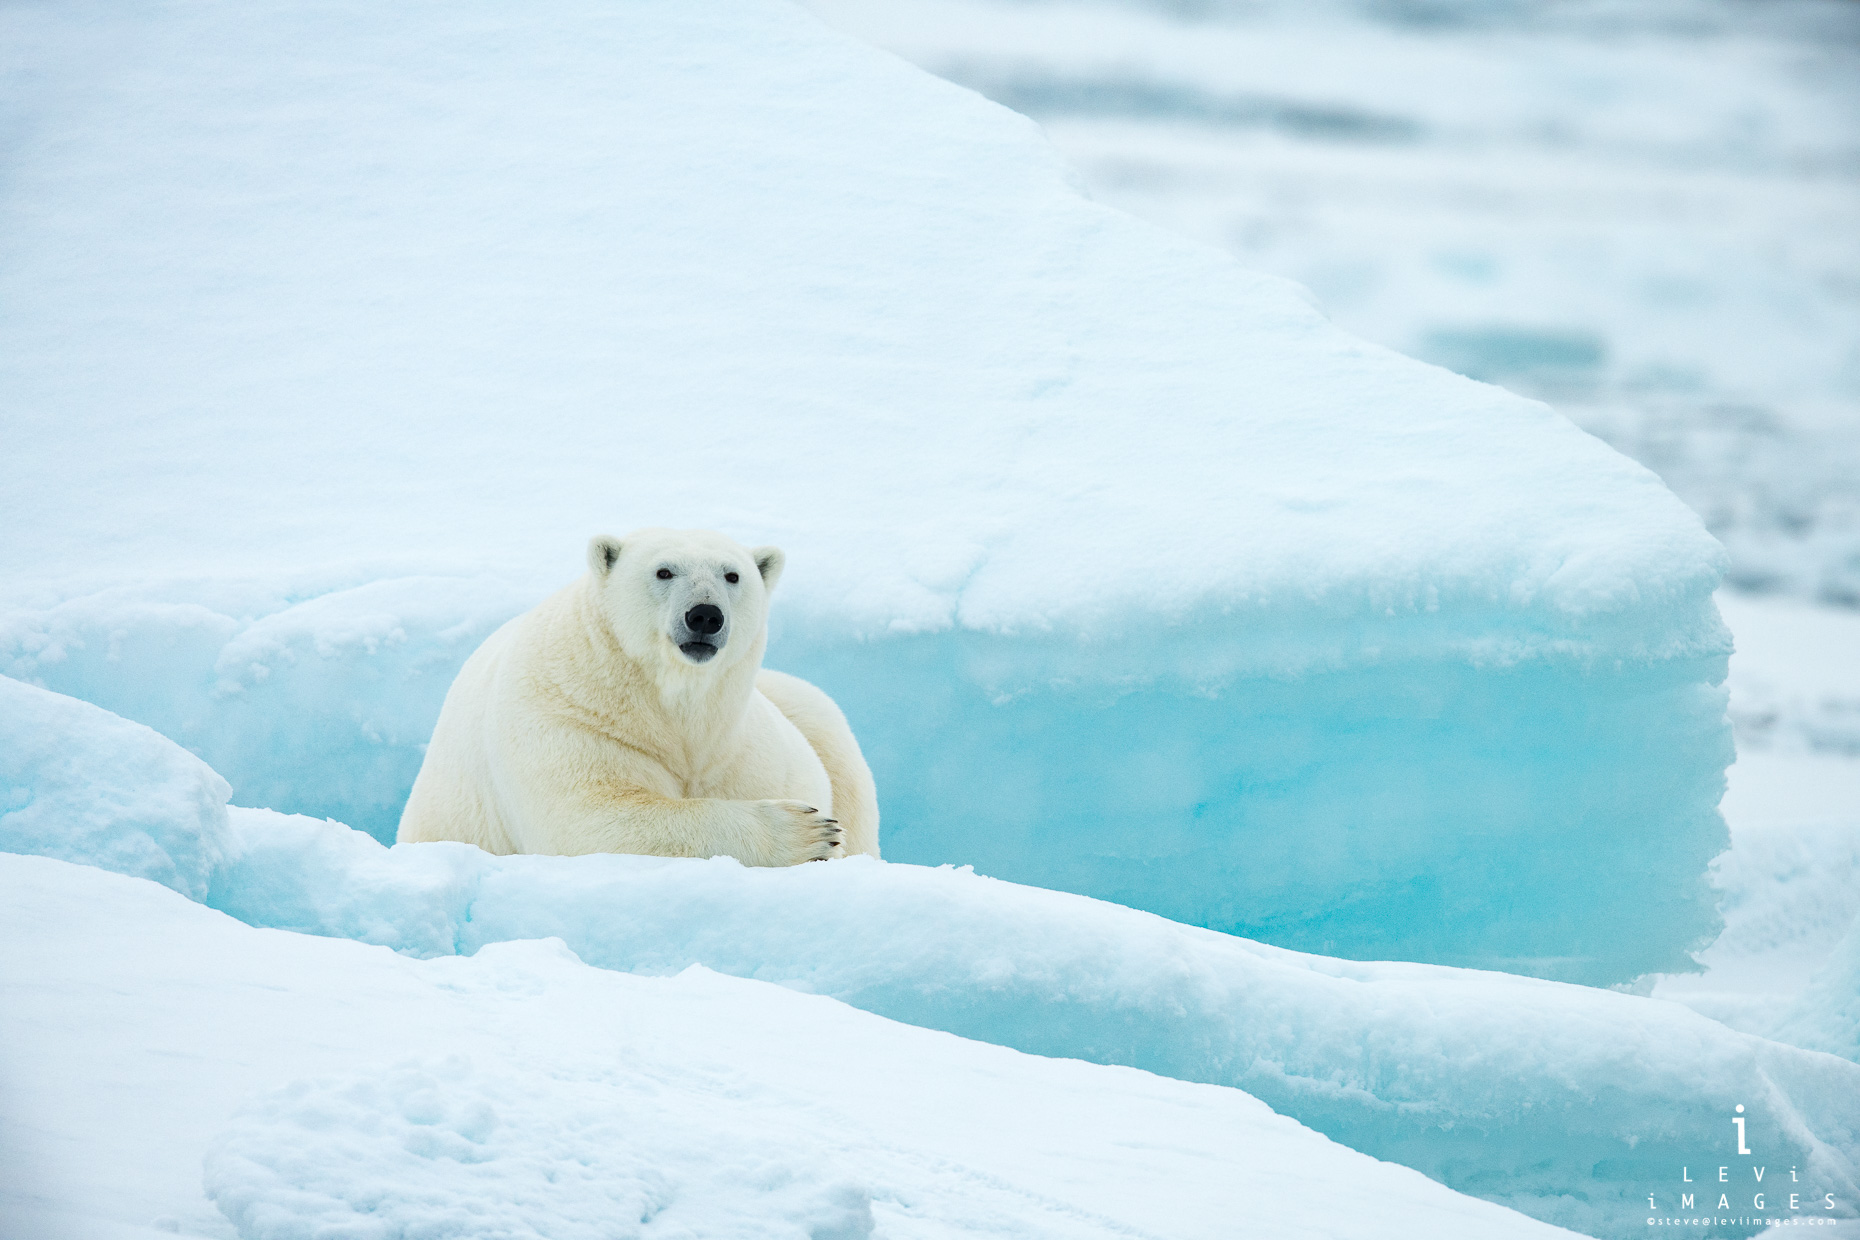 Polar bear (Ursus maritimus) resting on blue ice. Svalbard, Norway